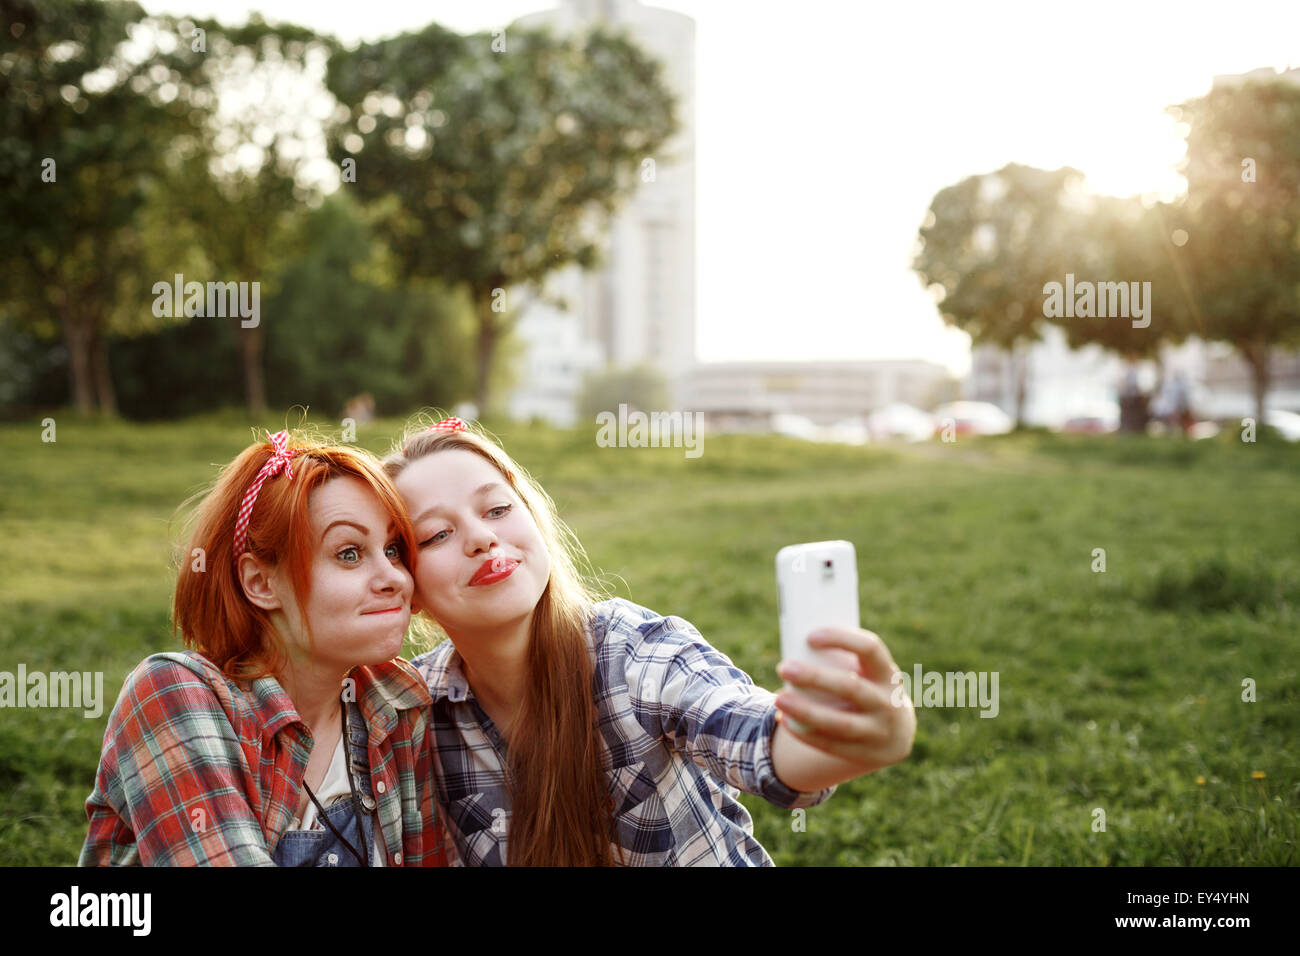 Two Young Hipster Girls Having Fun and Taking Photos (Making Selfie) on Smartphone in a Summer Park at the Sunset. - Stock Image